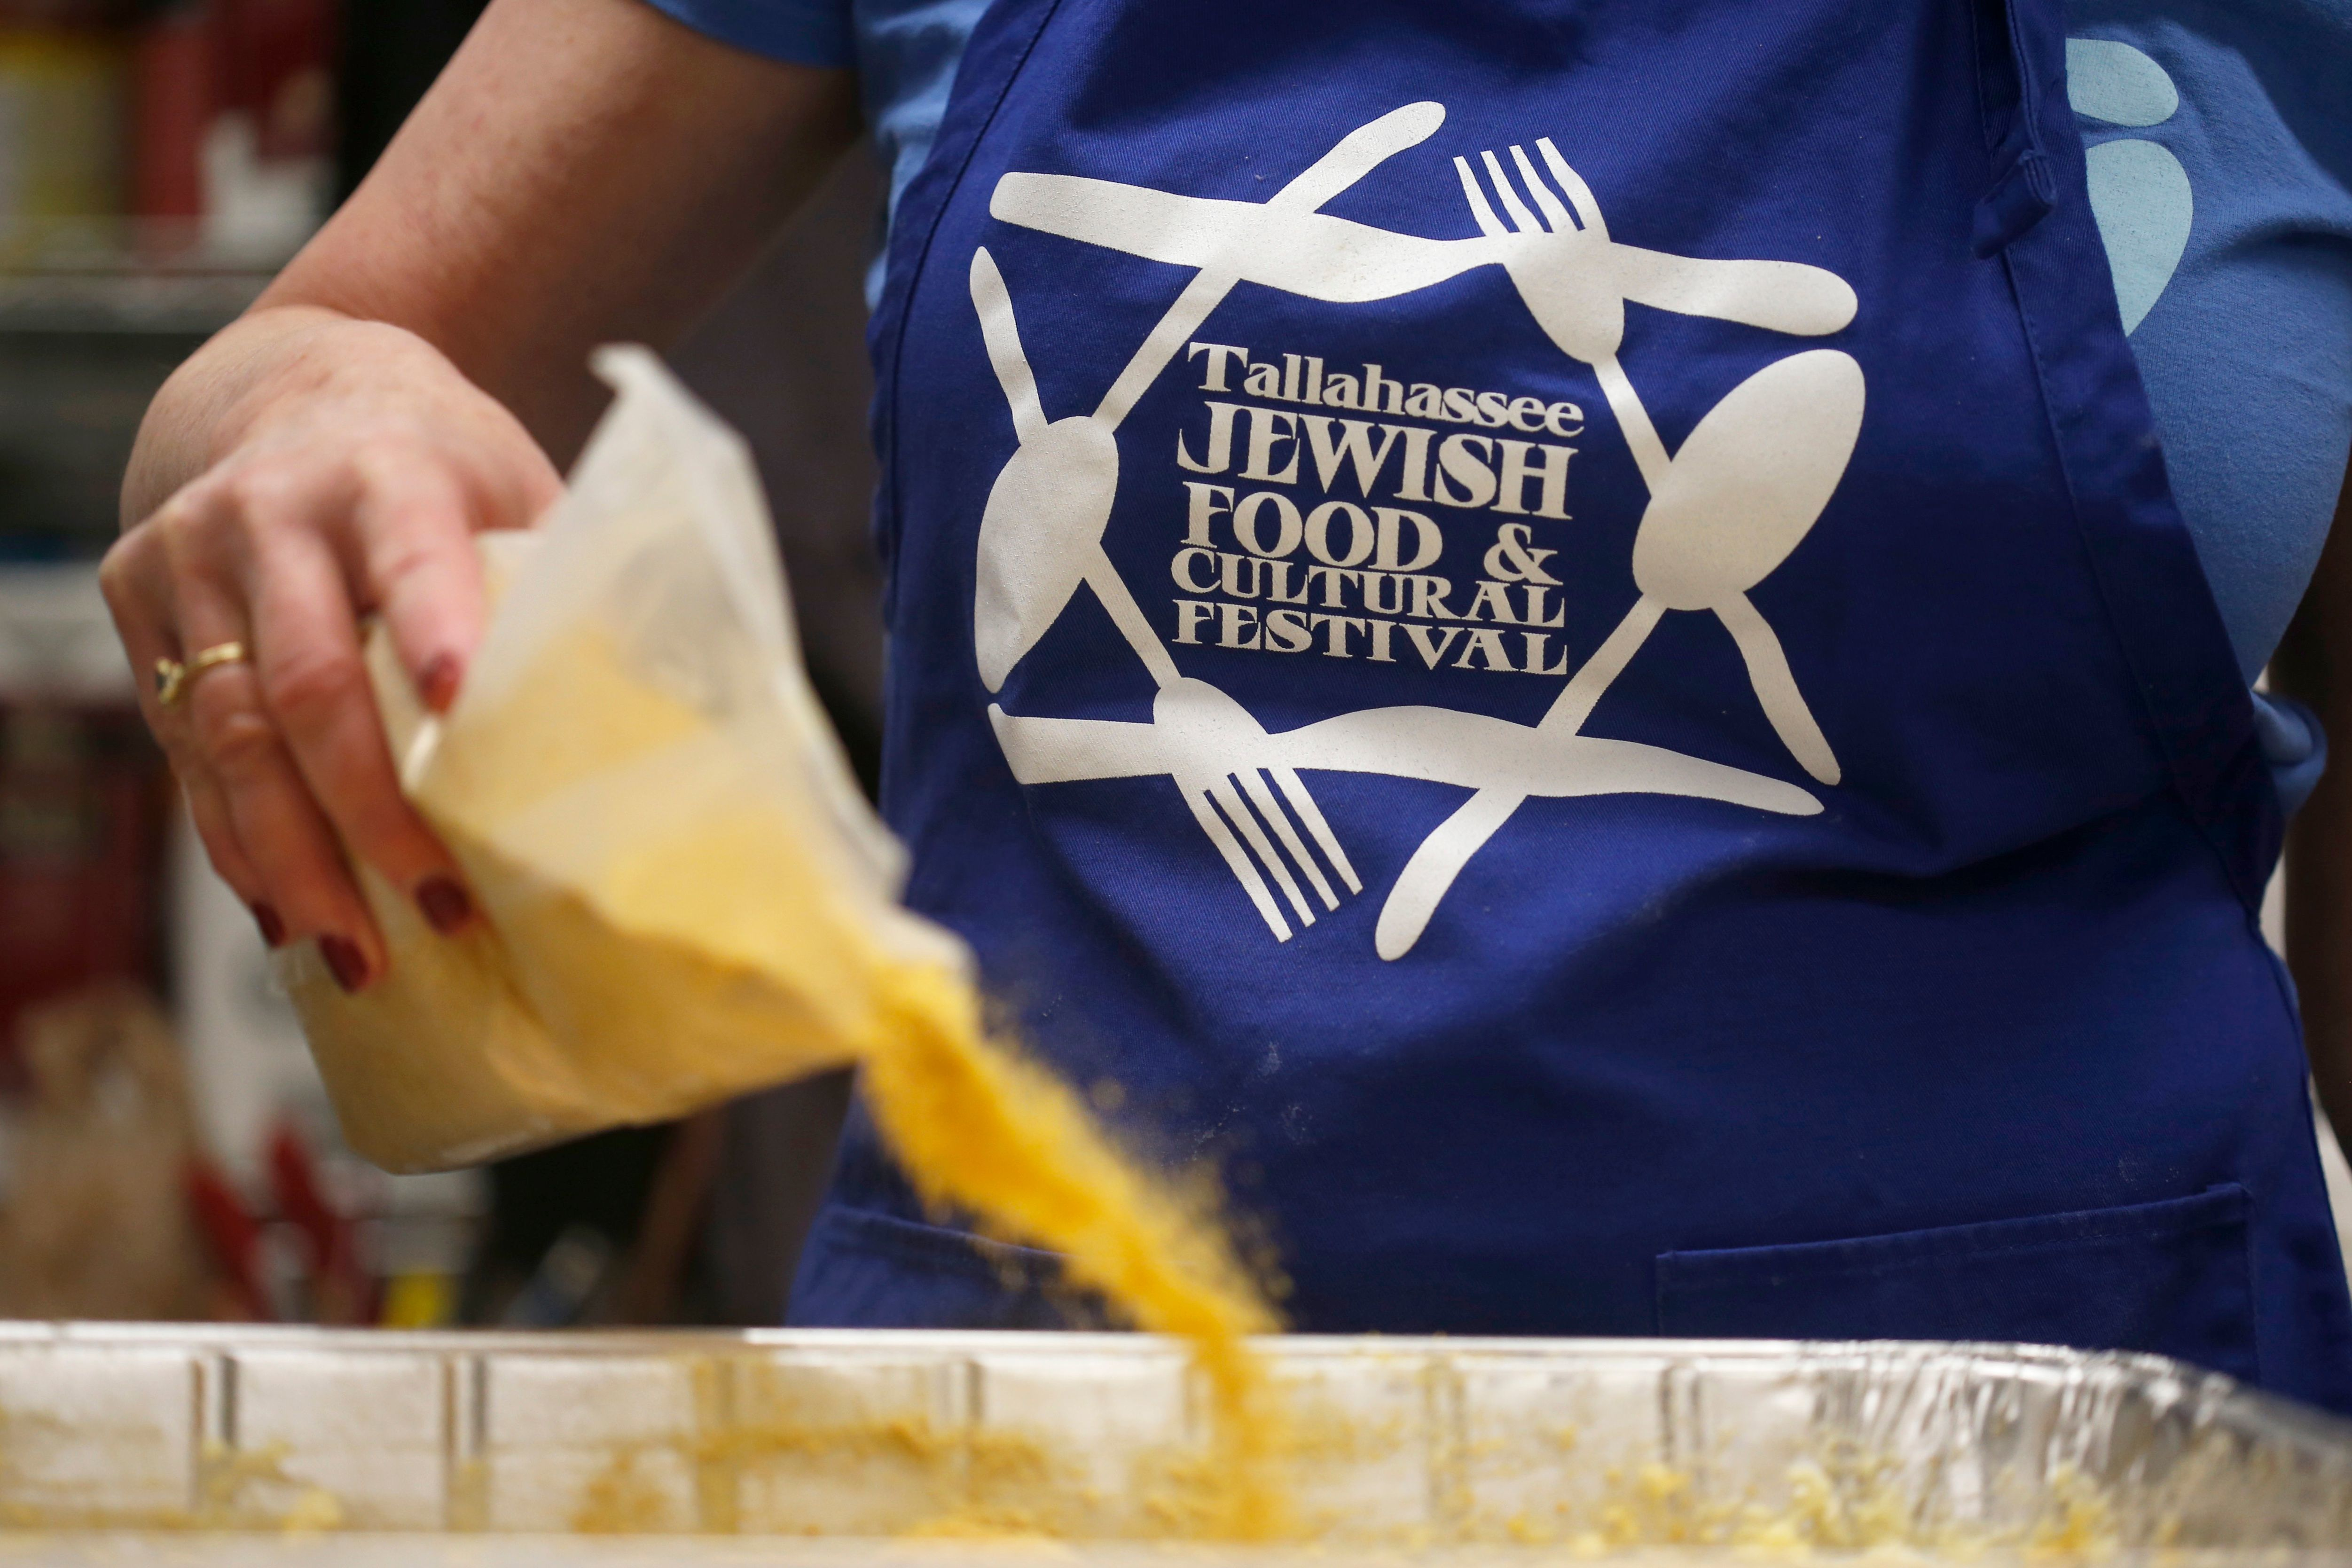 Preparing kugel for the annual Tallahassee Jewish Food & Cultural Festival set this year for March 8.